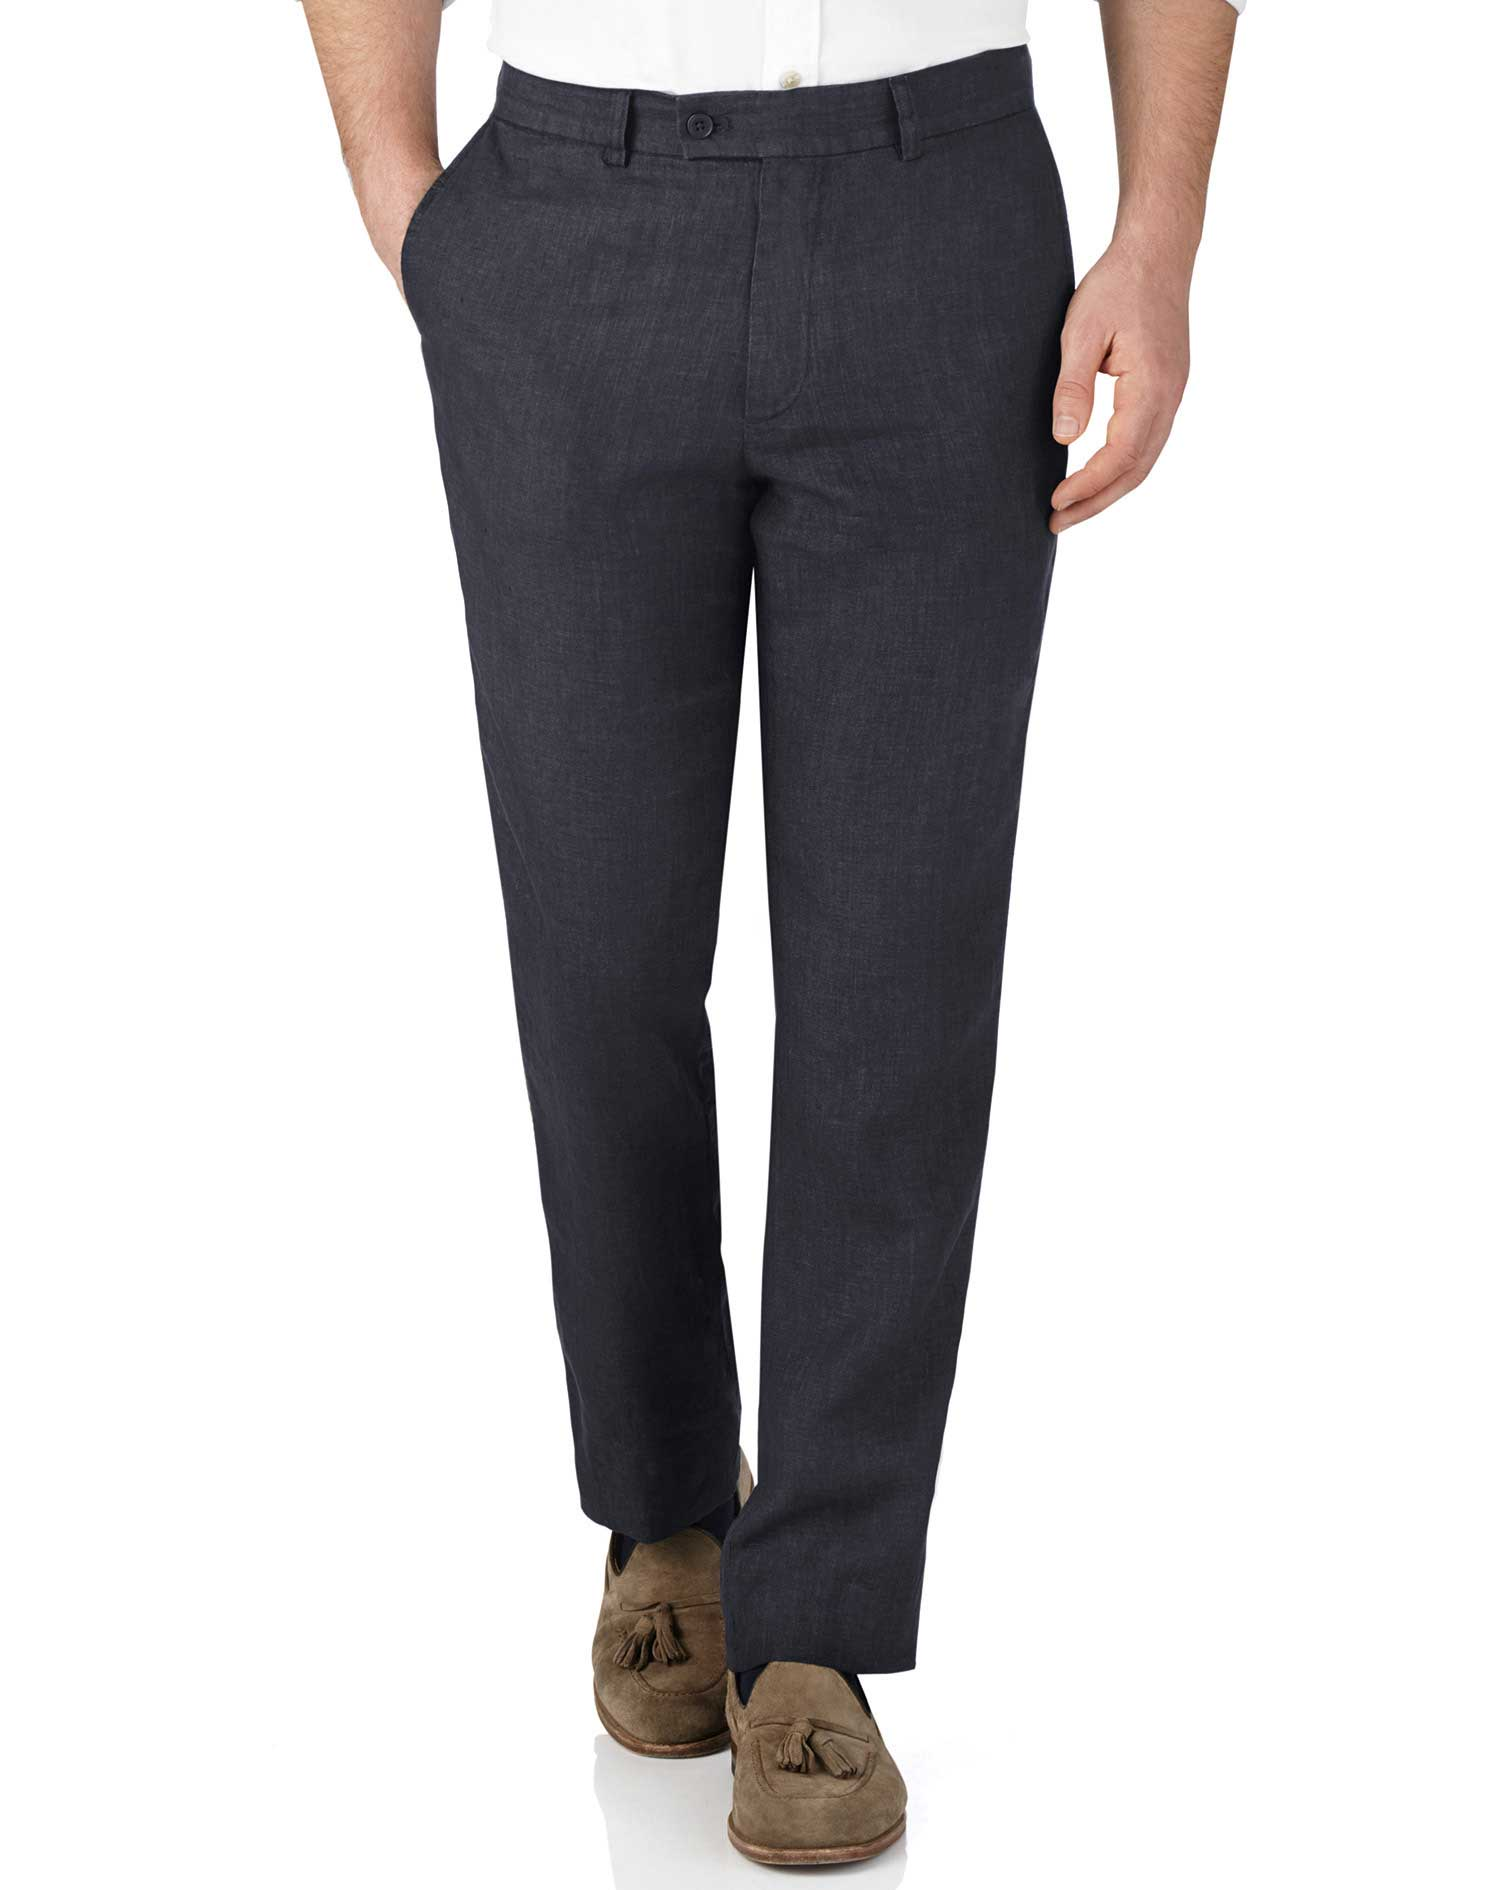 Navy Slim Fit Linen Trousers Size W38 L32 by Charles Tyrwhitt